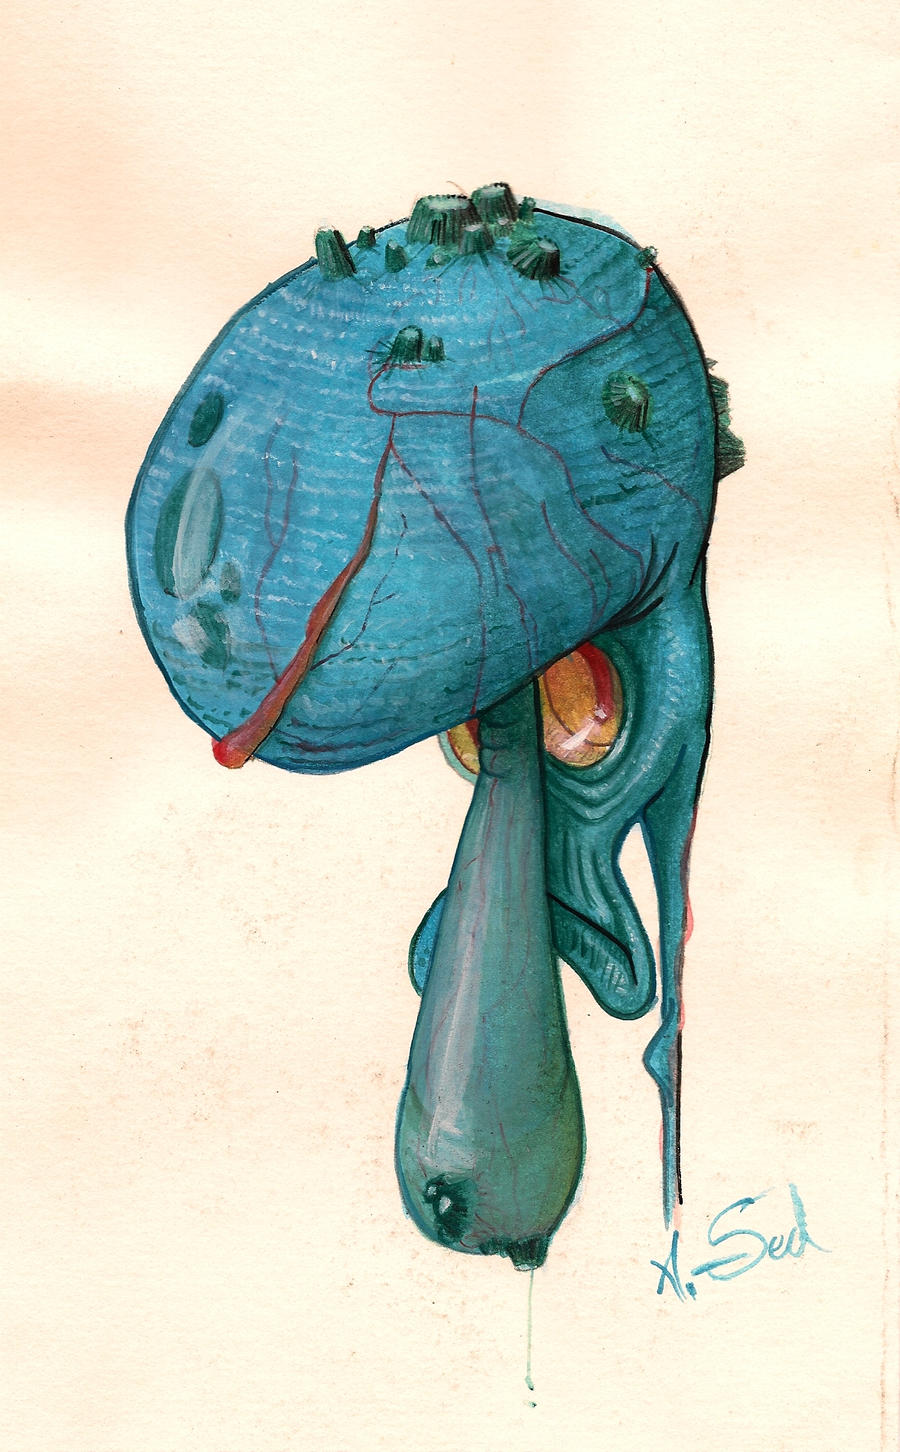 squidward q tentacles by tesseract sect on deviantart